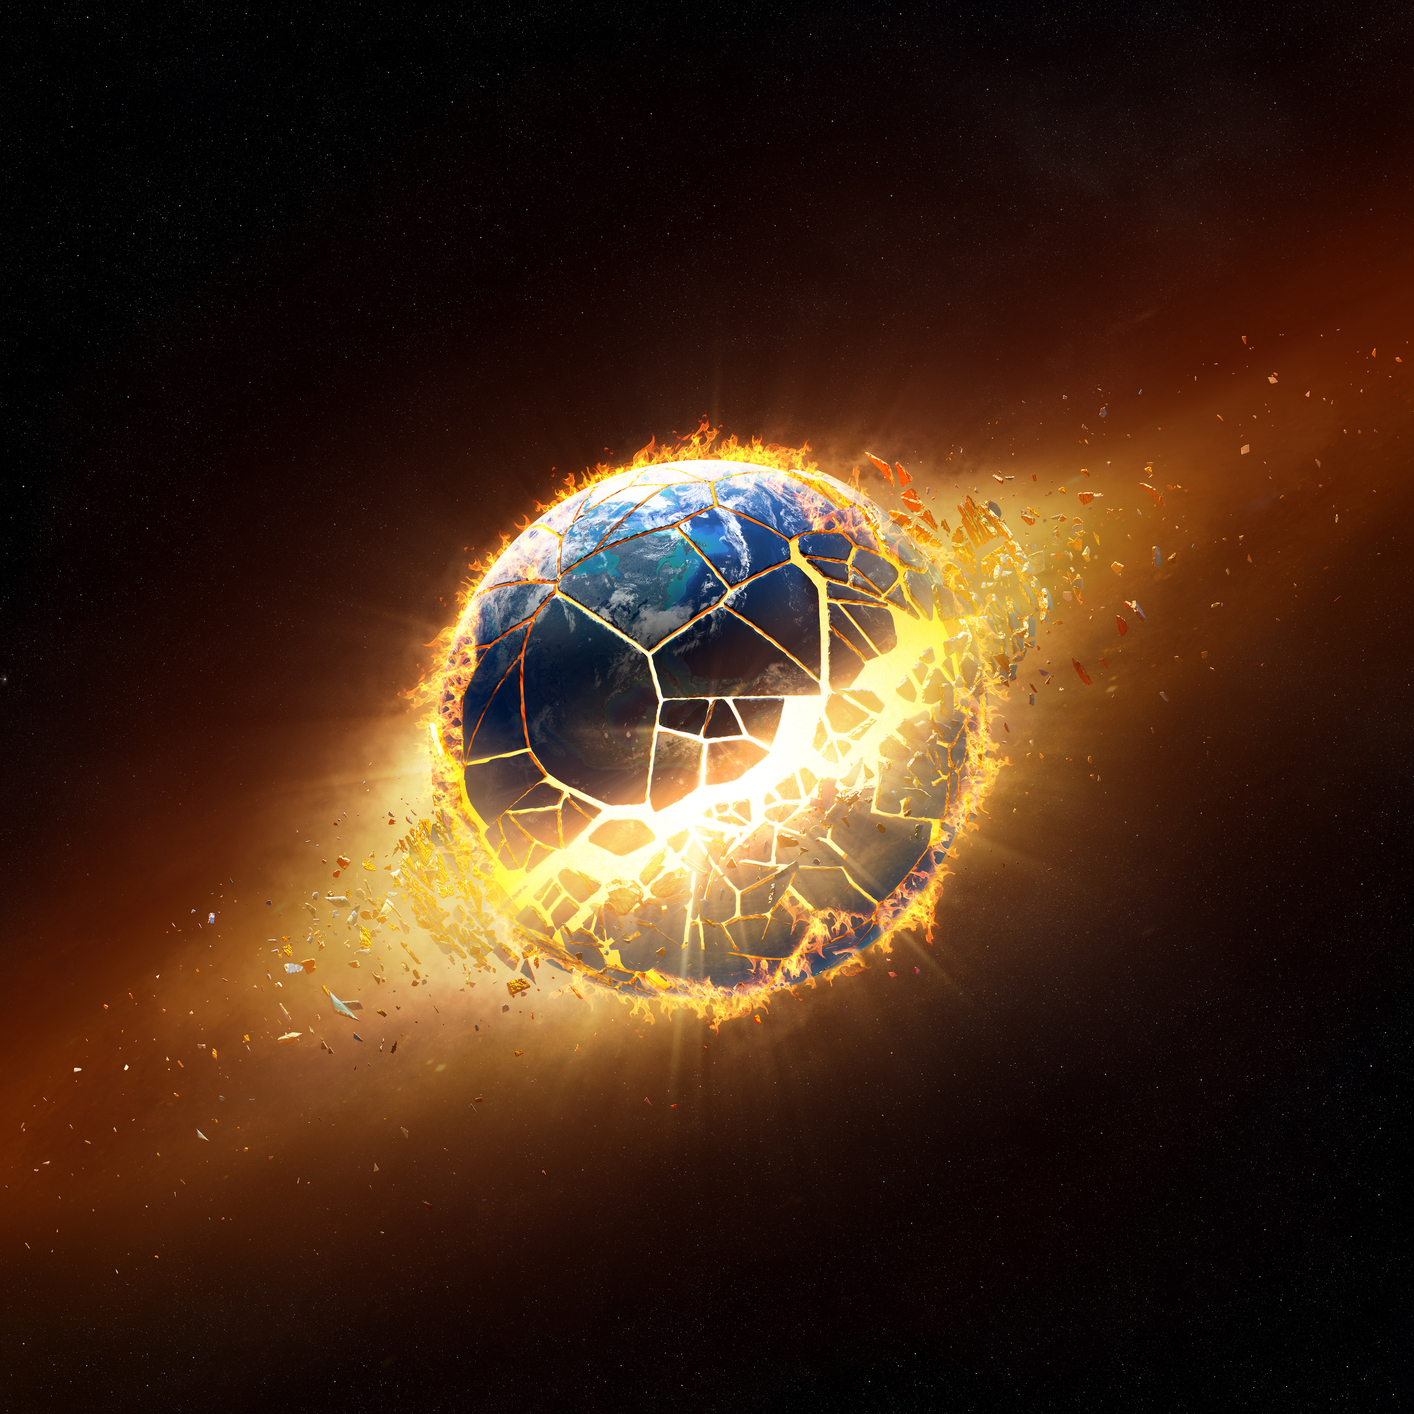 The World Has Ended!   Picture provided by depositphotos.com